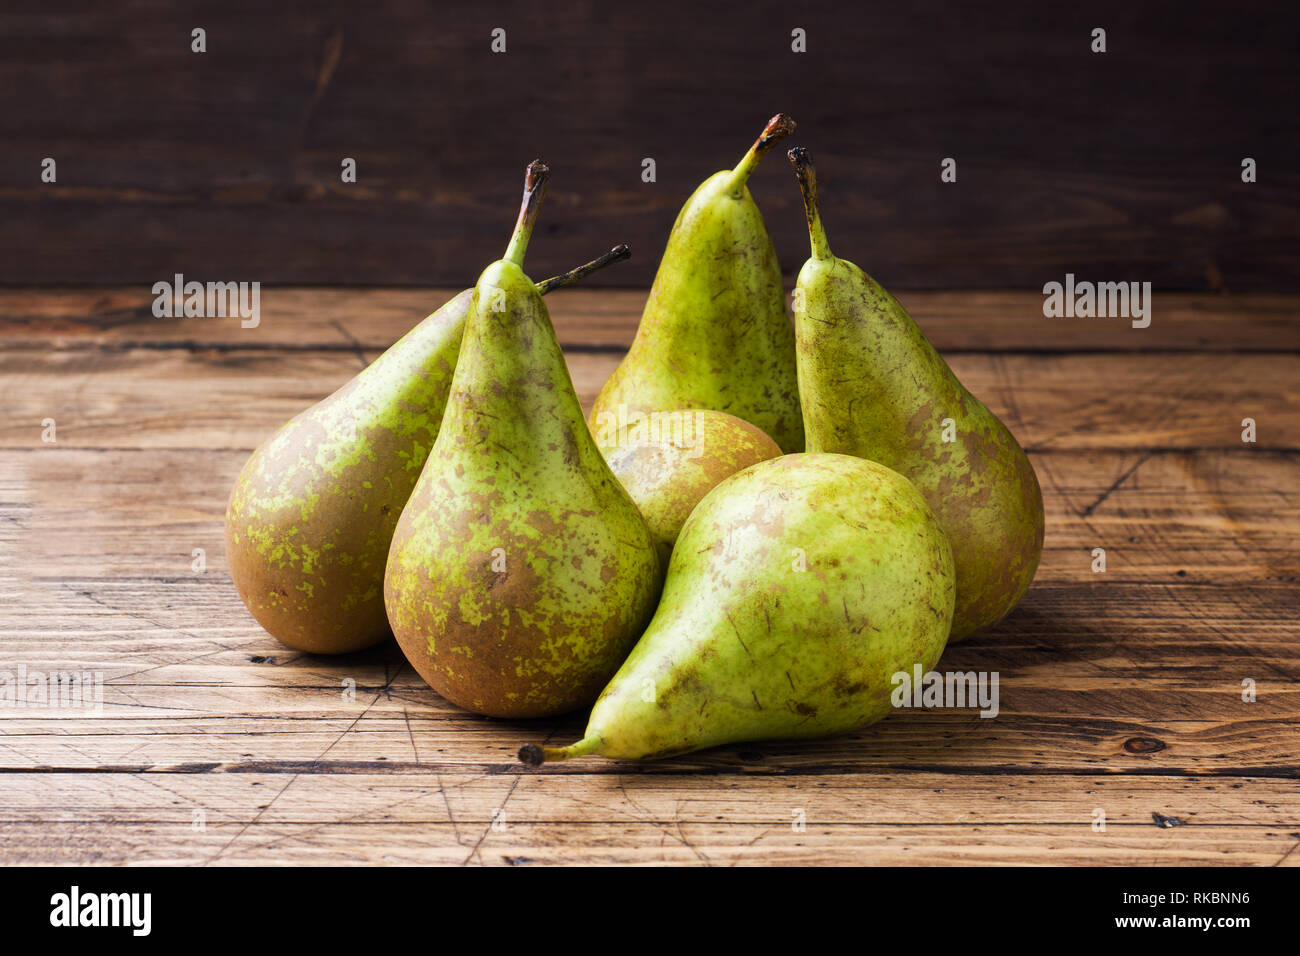 Fresh juicy Pears Conference on wooden rustic background Stock Photo